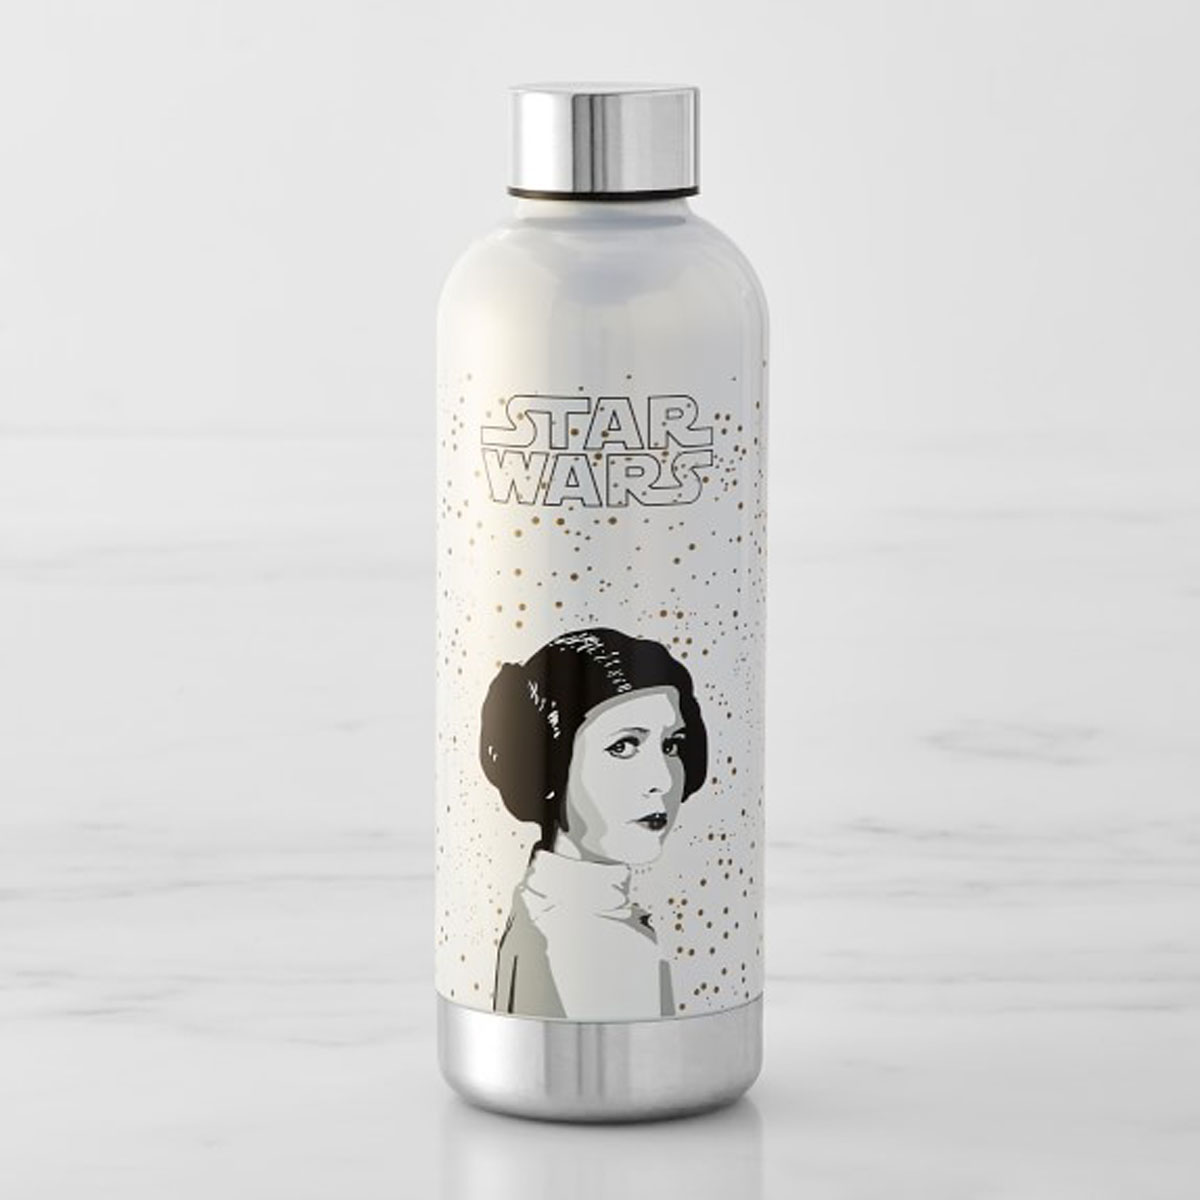 Star wars leia water bottle